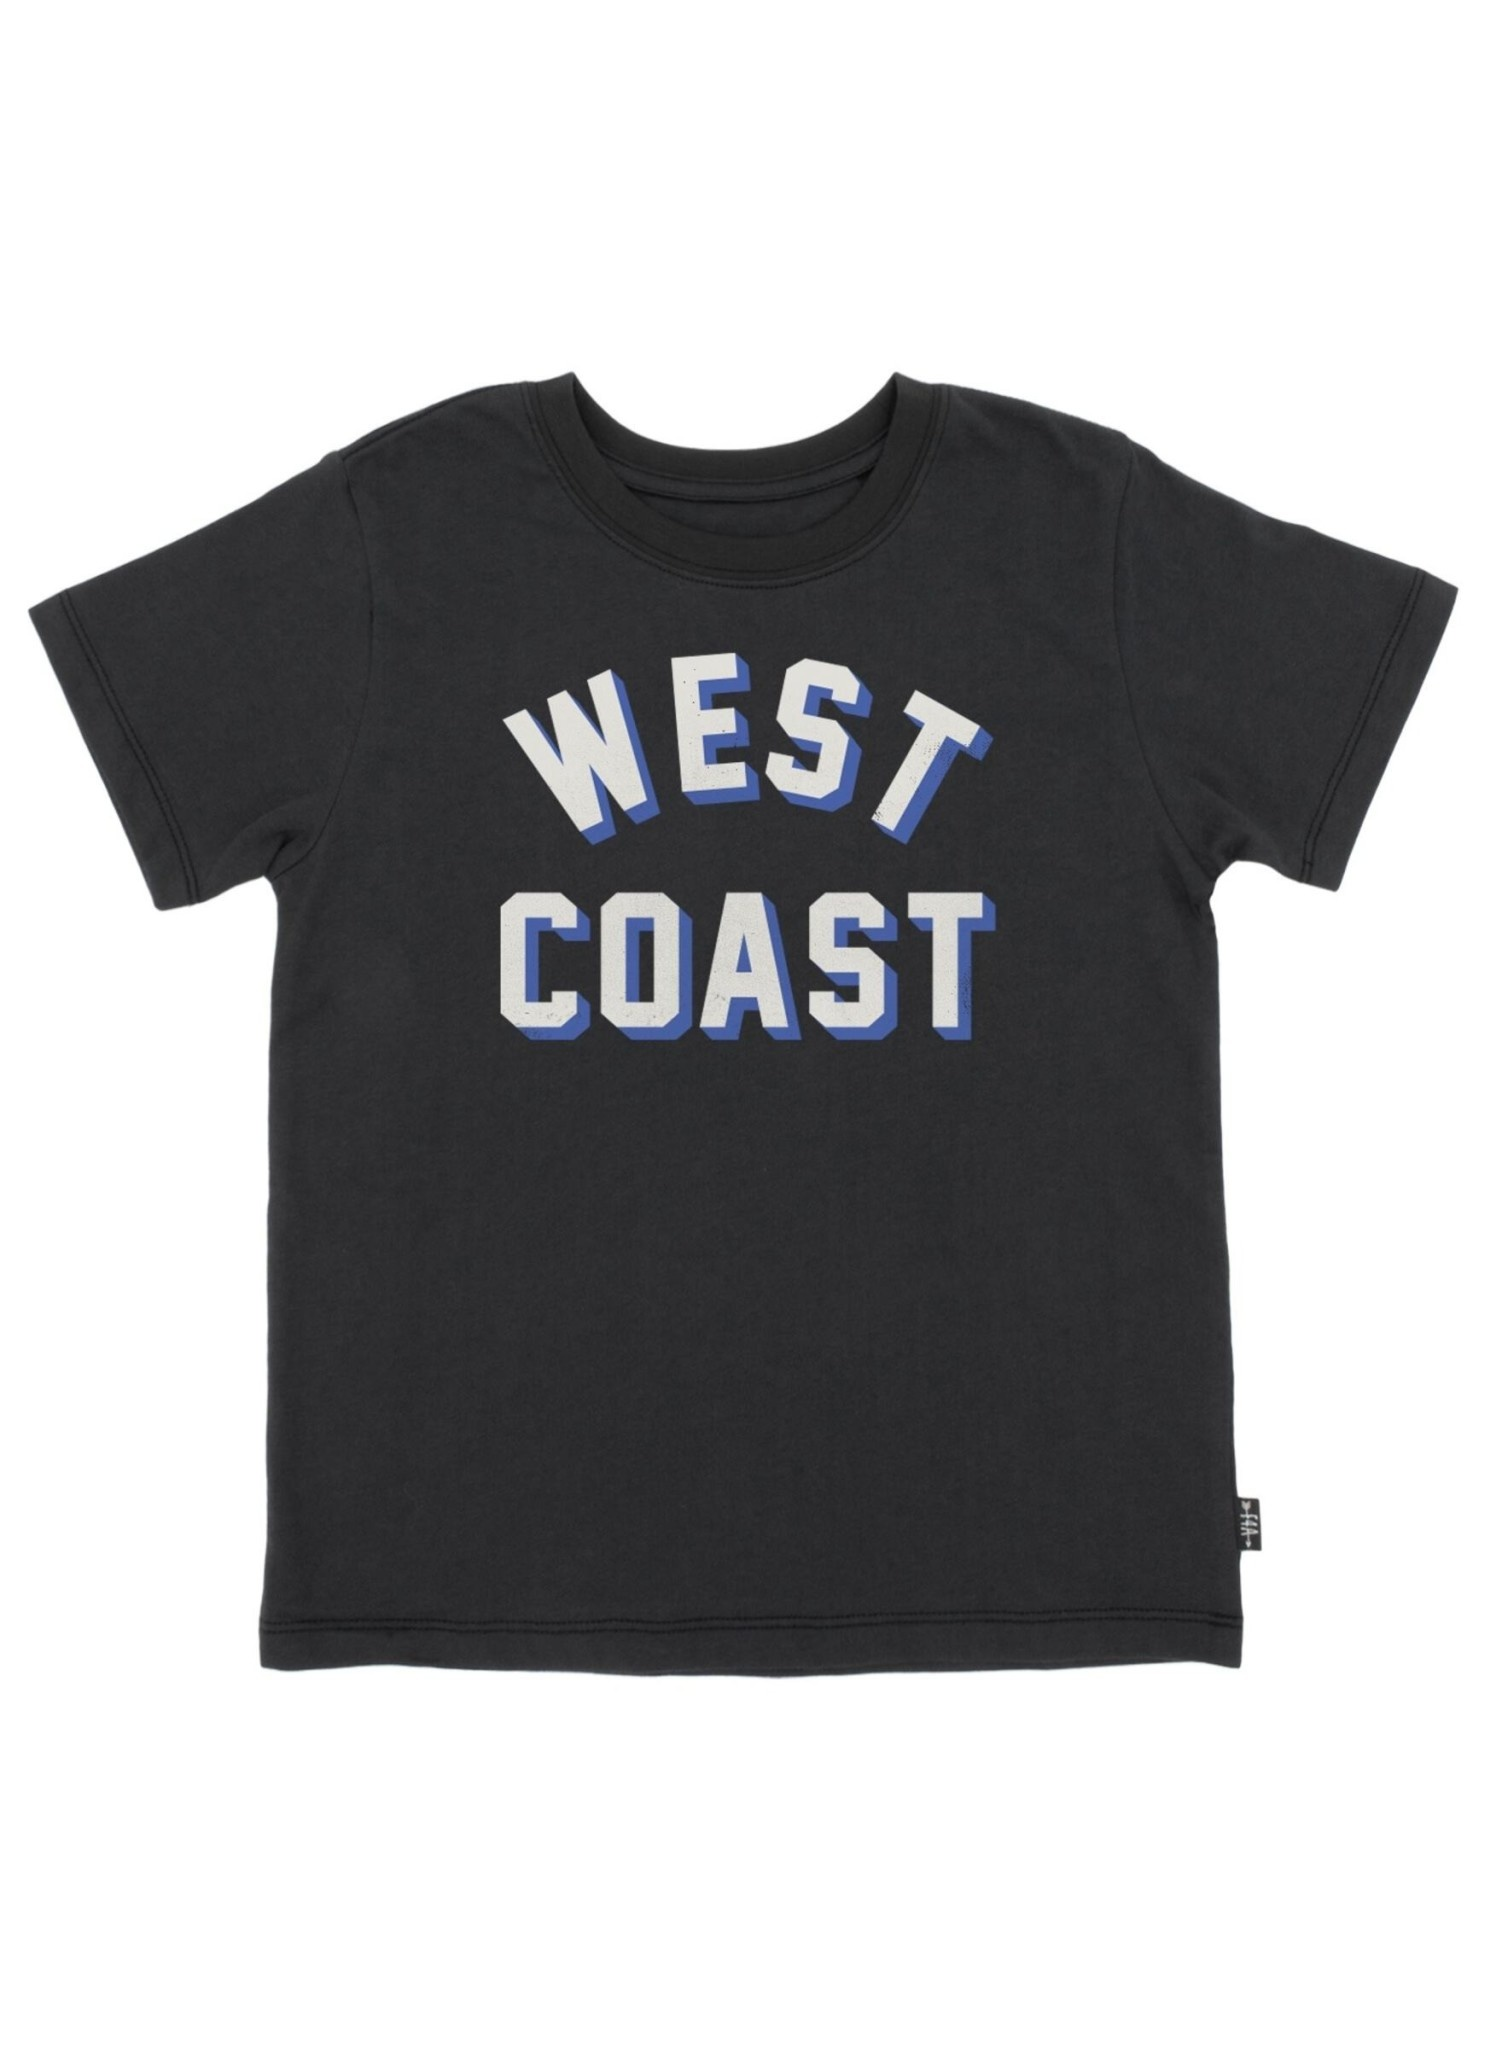 Feather 4 Arrow West Coast Vintage Tee- Washed Black